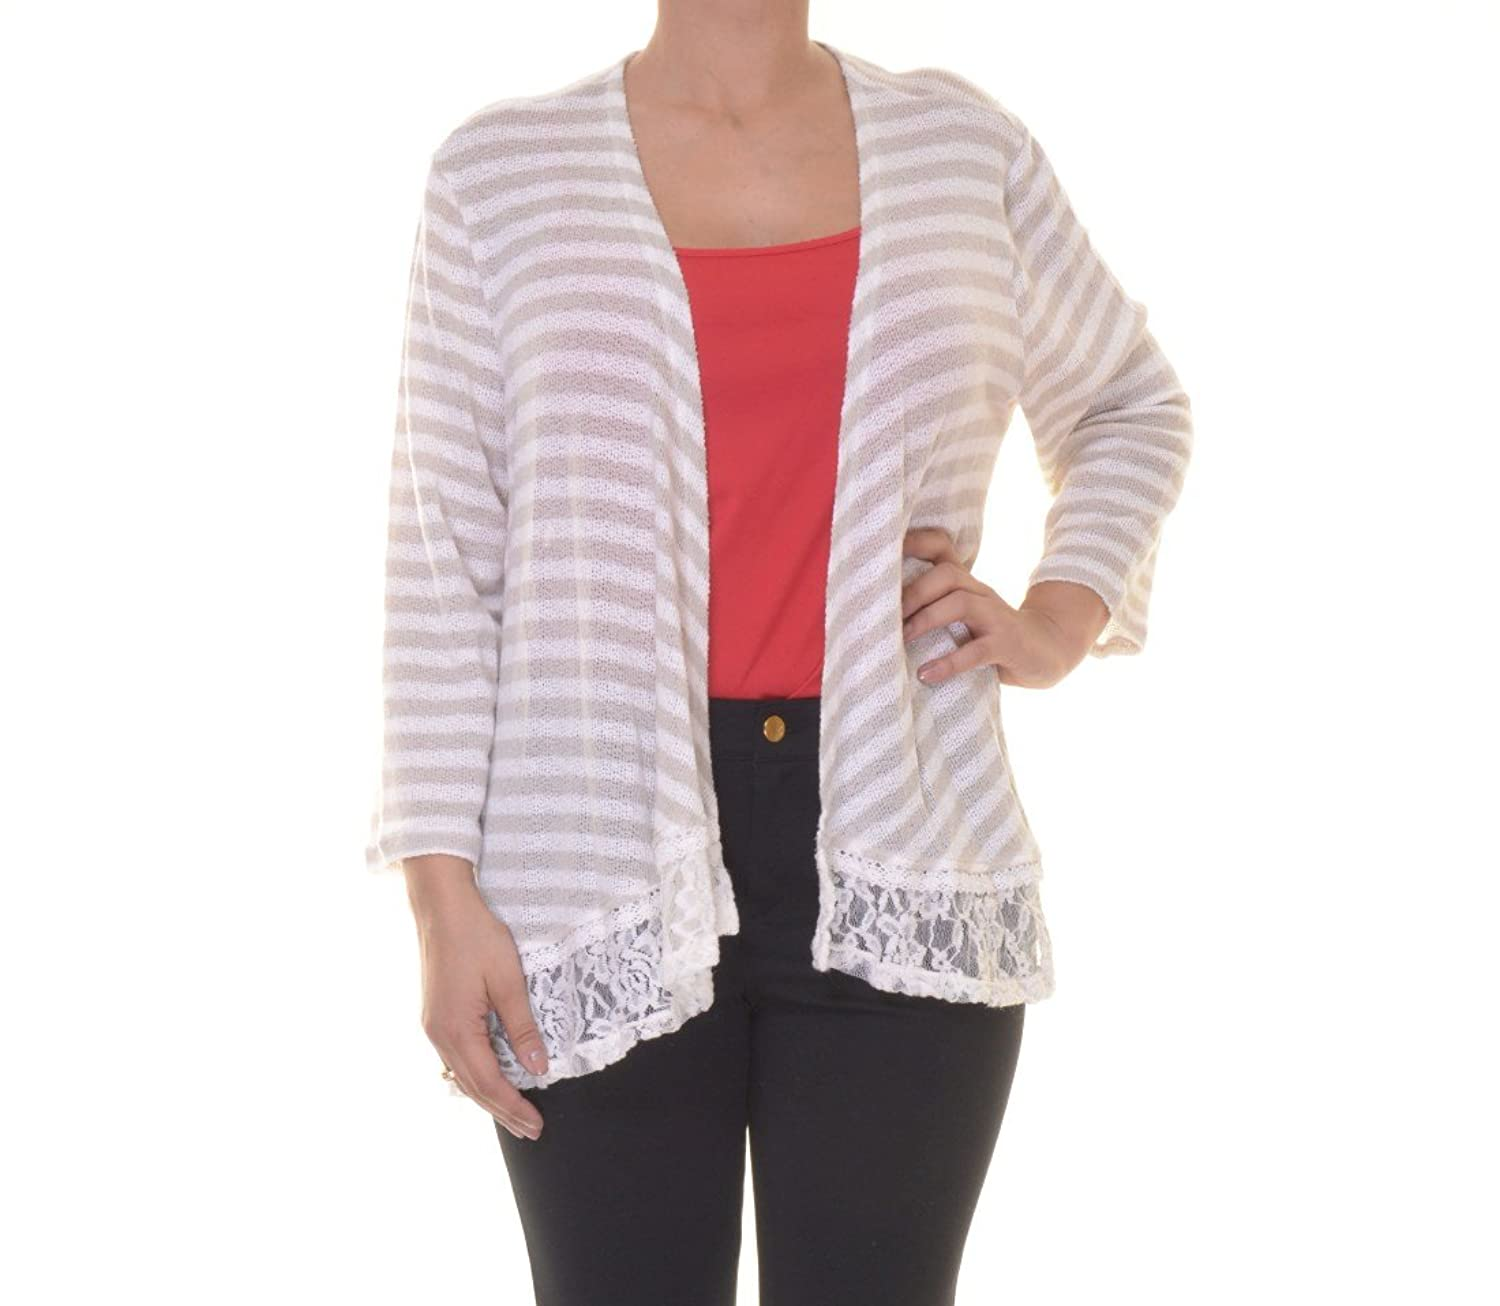 Style & Co. Women's Lace Trim Open Cardigan Sweater